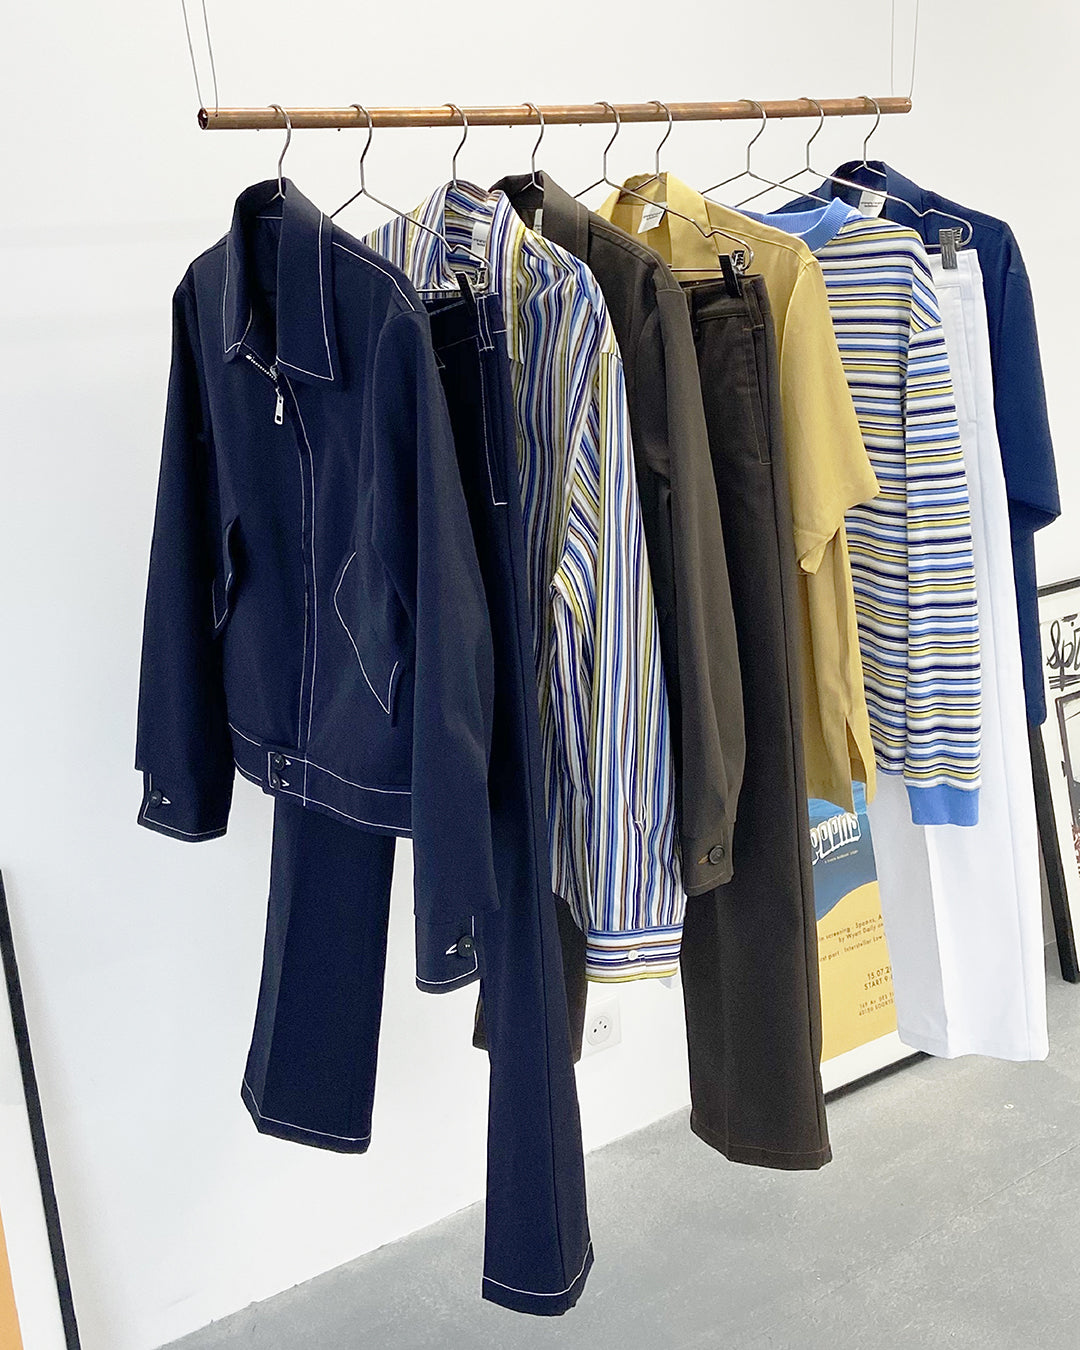 SS21 Parisian showroom